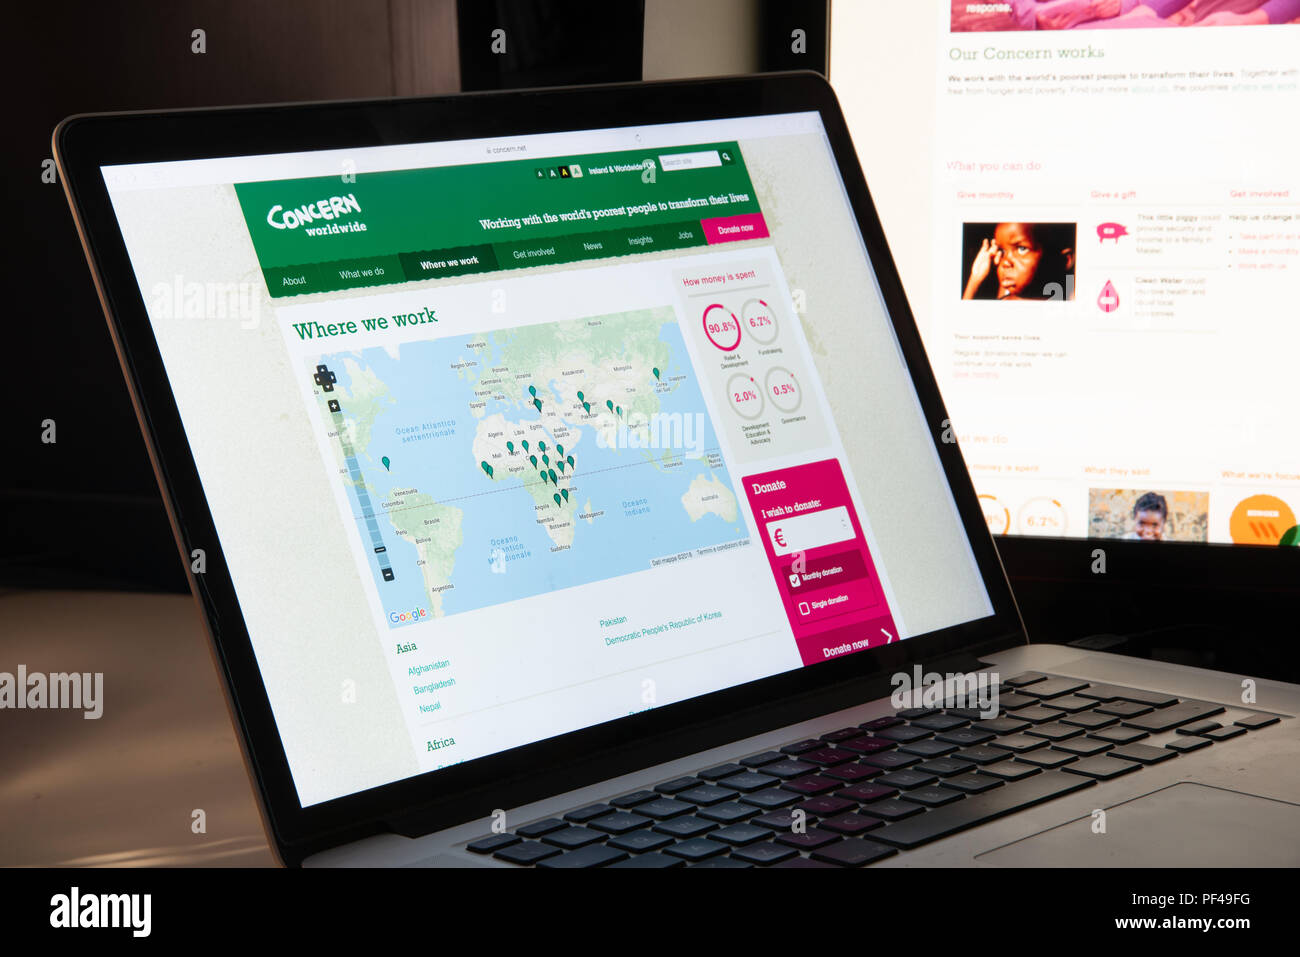 Milan, Italy - August 15, 2018: Concern NGO website homepage. Concern logo visible. - Stock Image